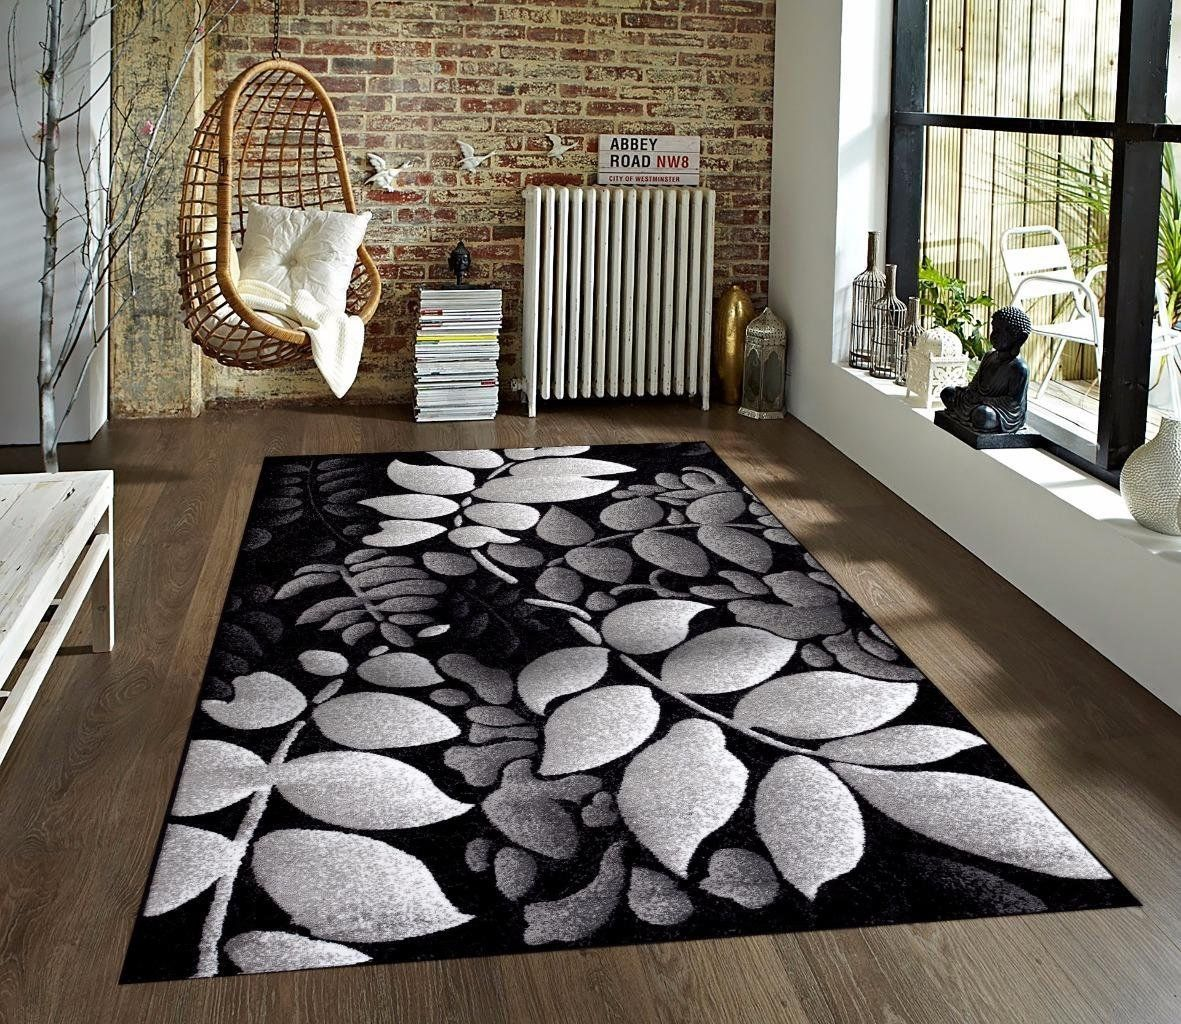 Gray White Black 52x72 Area Rug Leaves Carpet Large New Rugs On